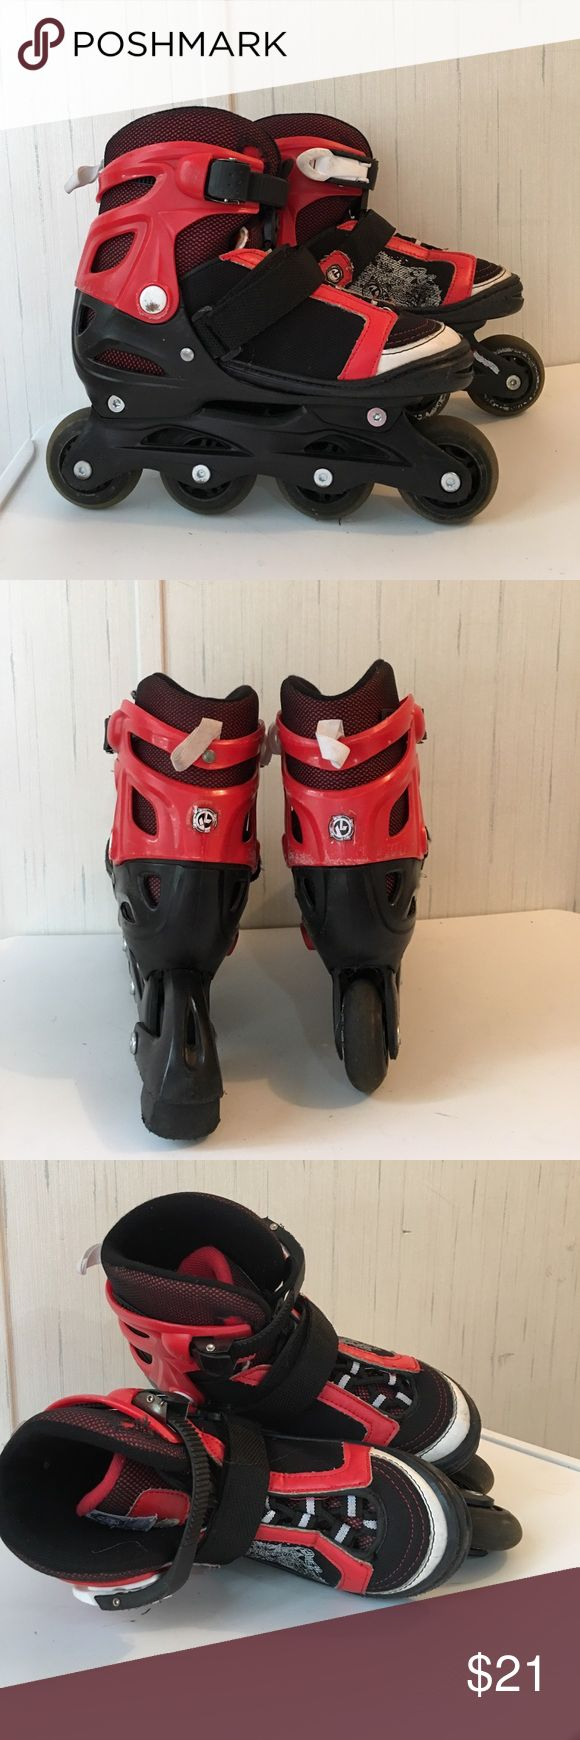 Kryptonite boys Boom inline skates Very nice roller blades with ABEC bearings, lace, Velcro close at top of skate, well padded, molded plastic at ankle with adjustable clamp close. Adjustable size 1-4 no defects Bravo Sports Other